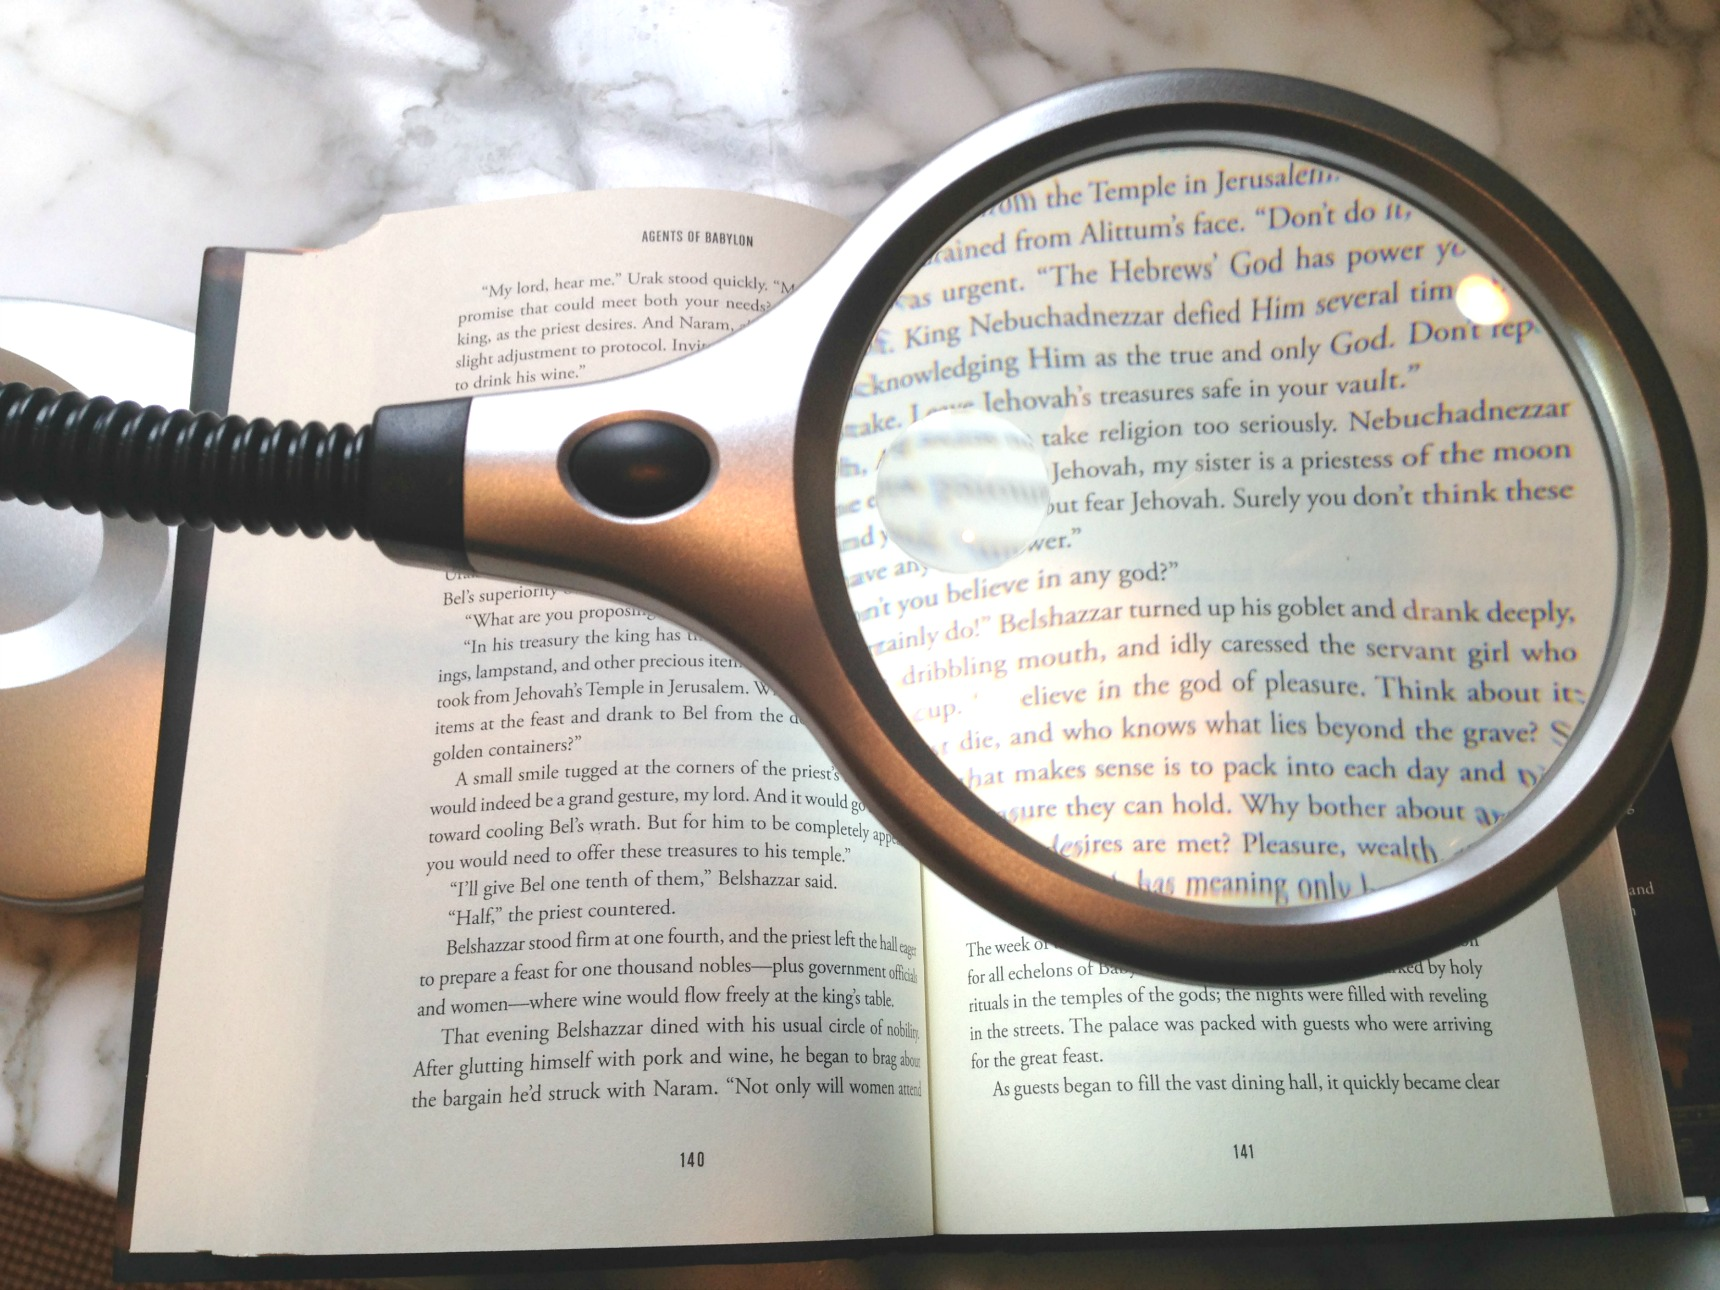 low vision aids for reading